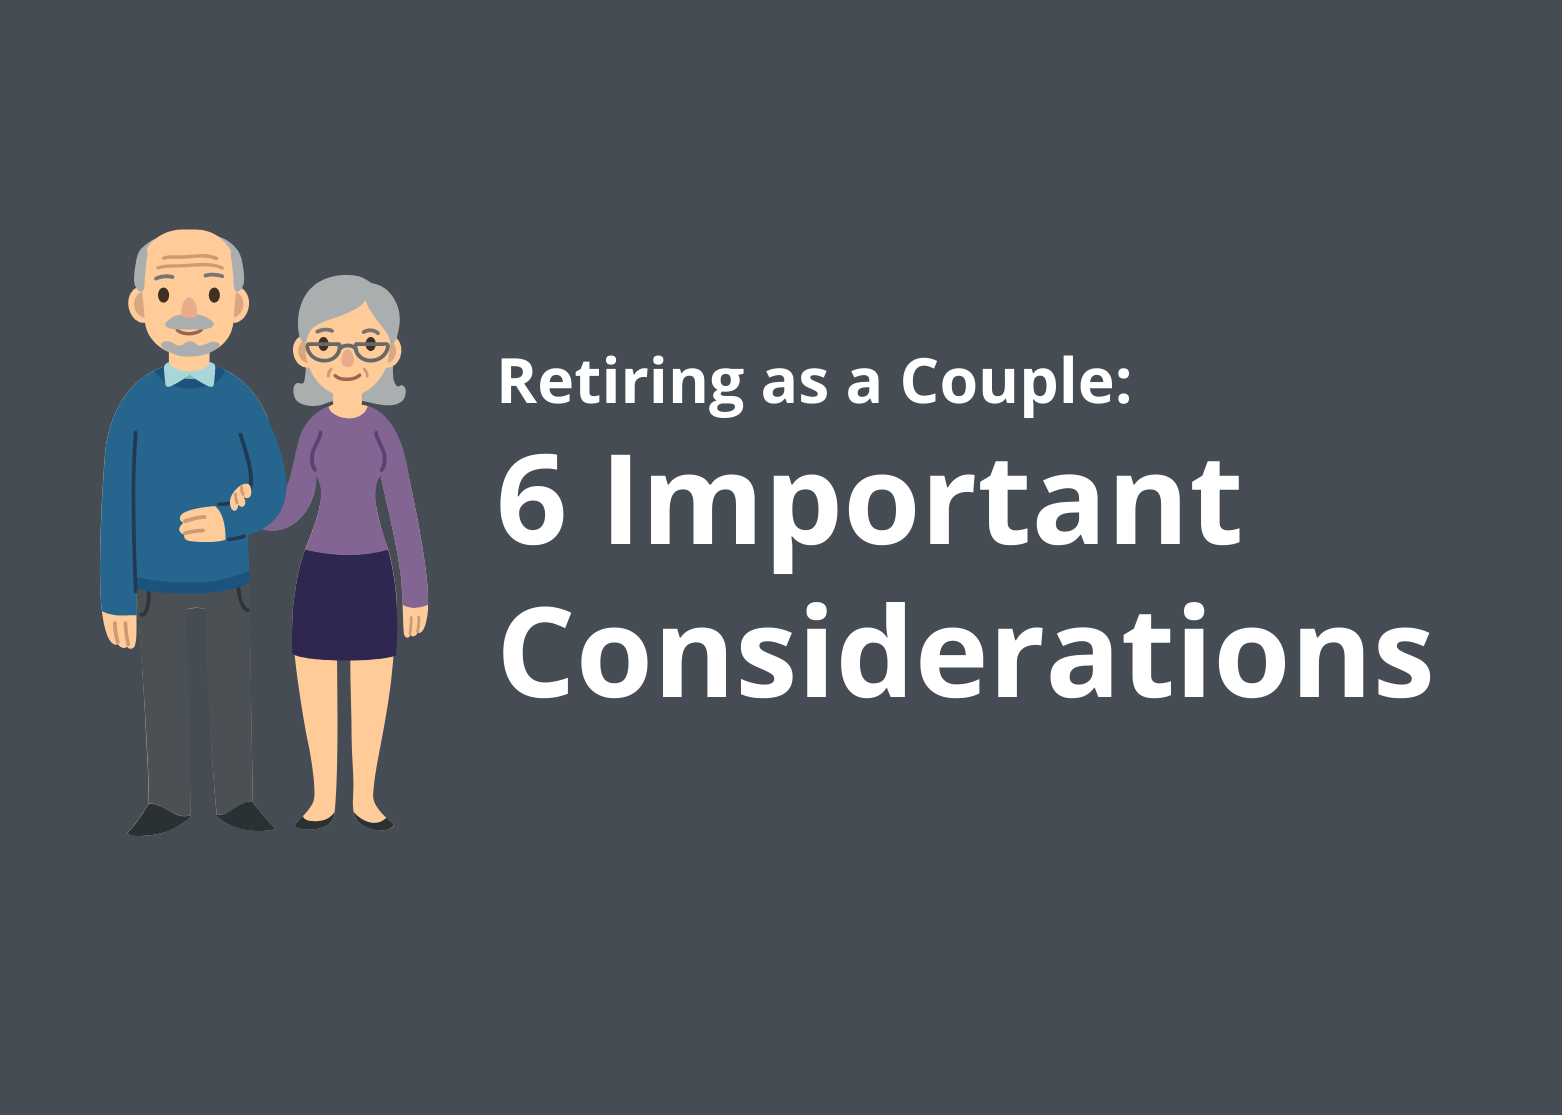 Are You Retiring Together as a Couple? 6 Important Considerations. Thumbnail